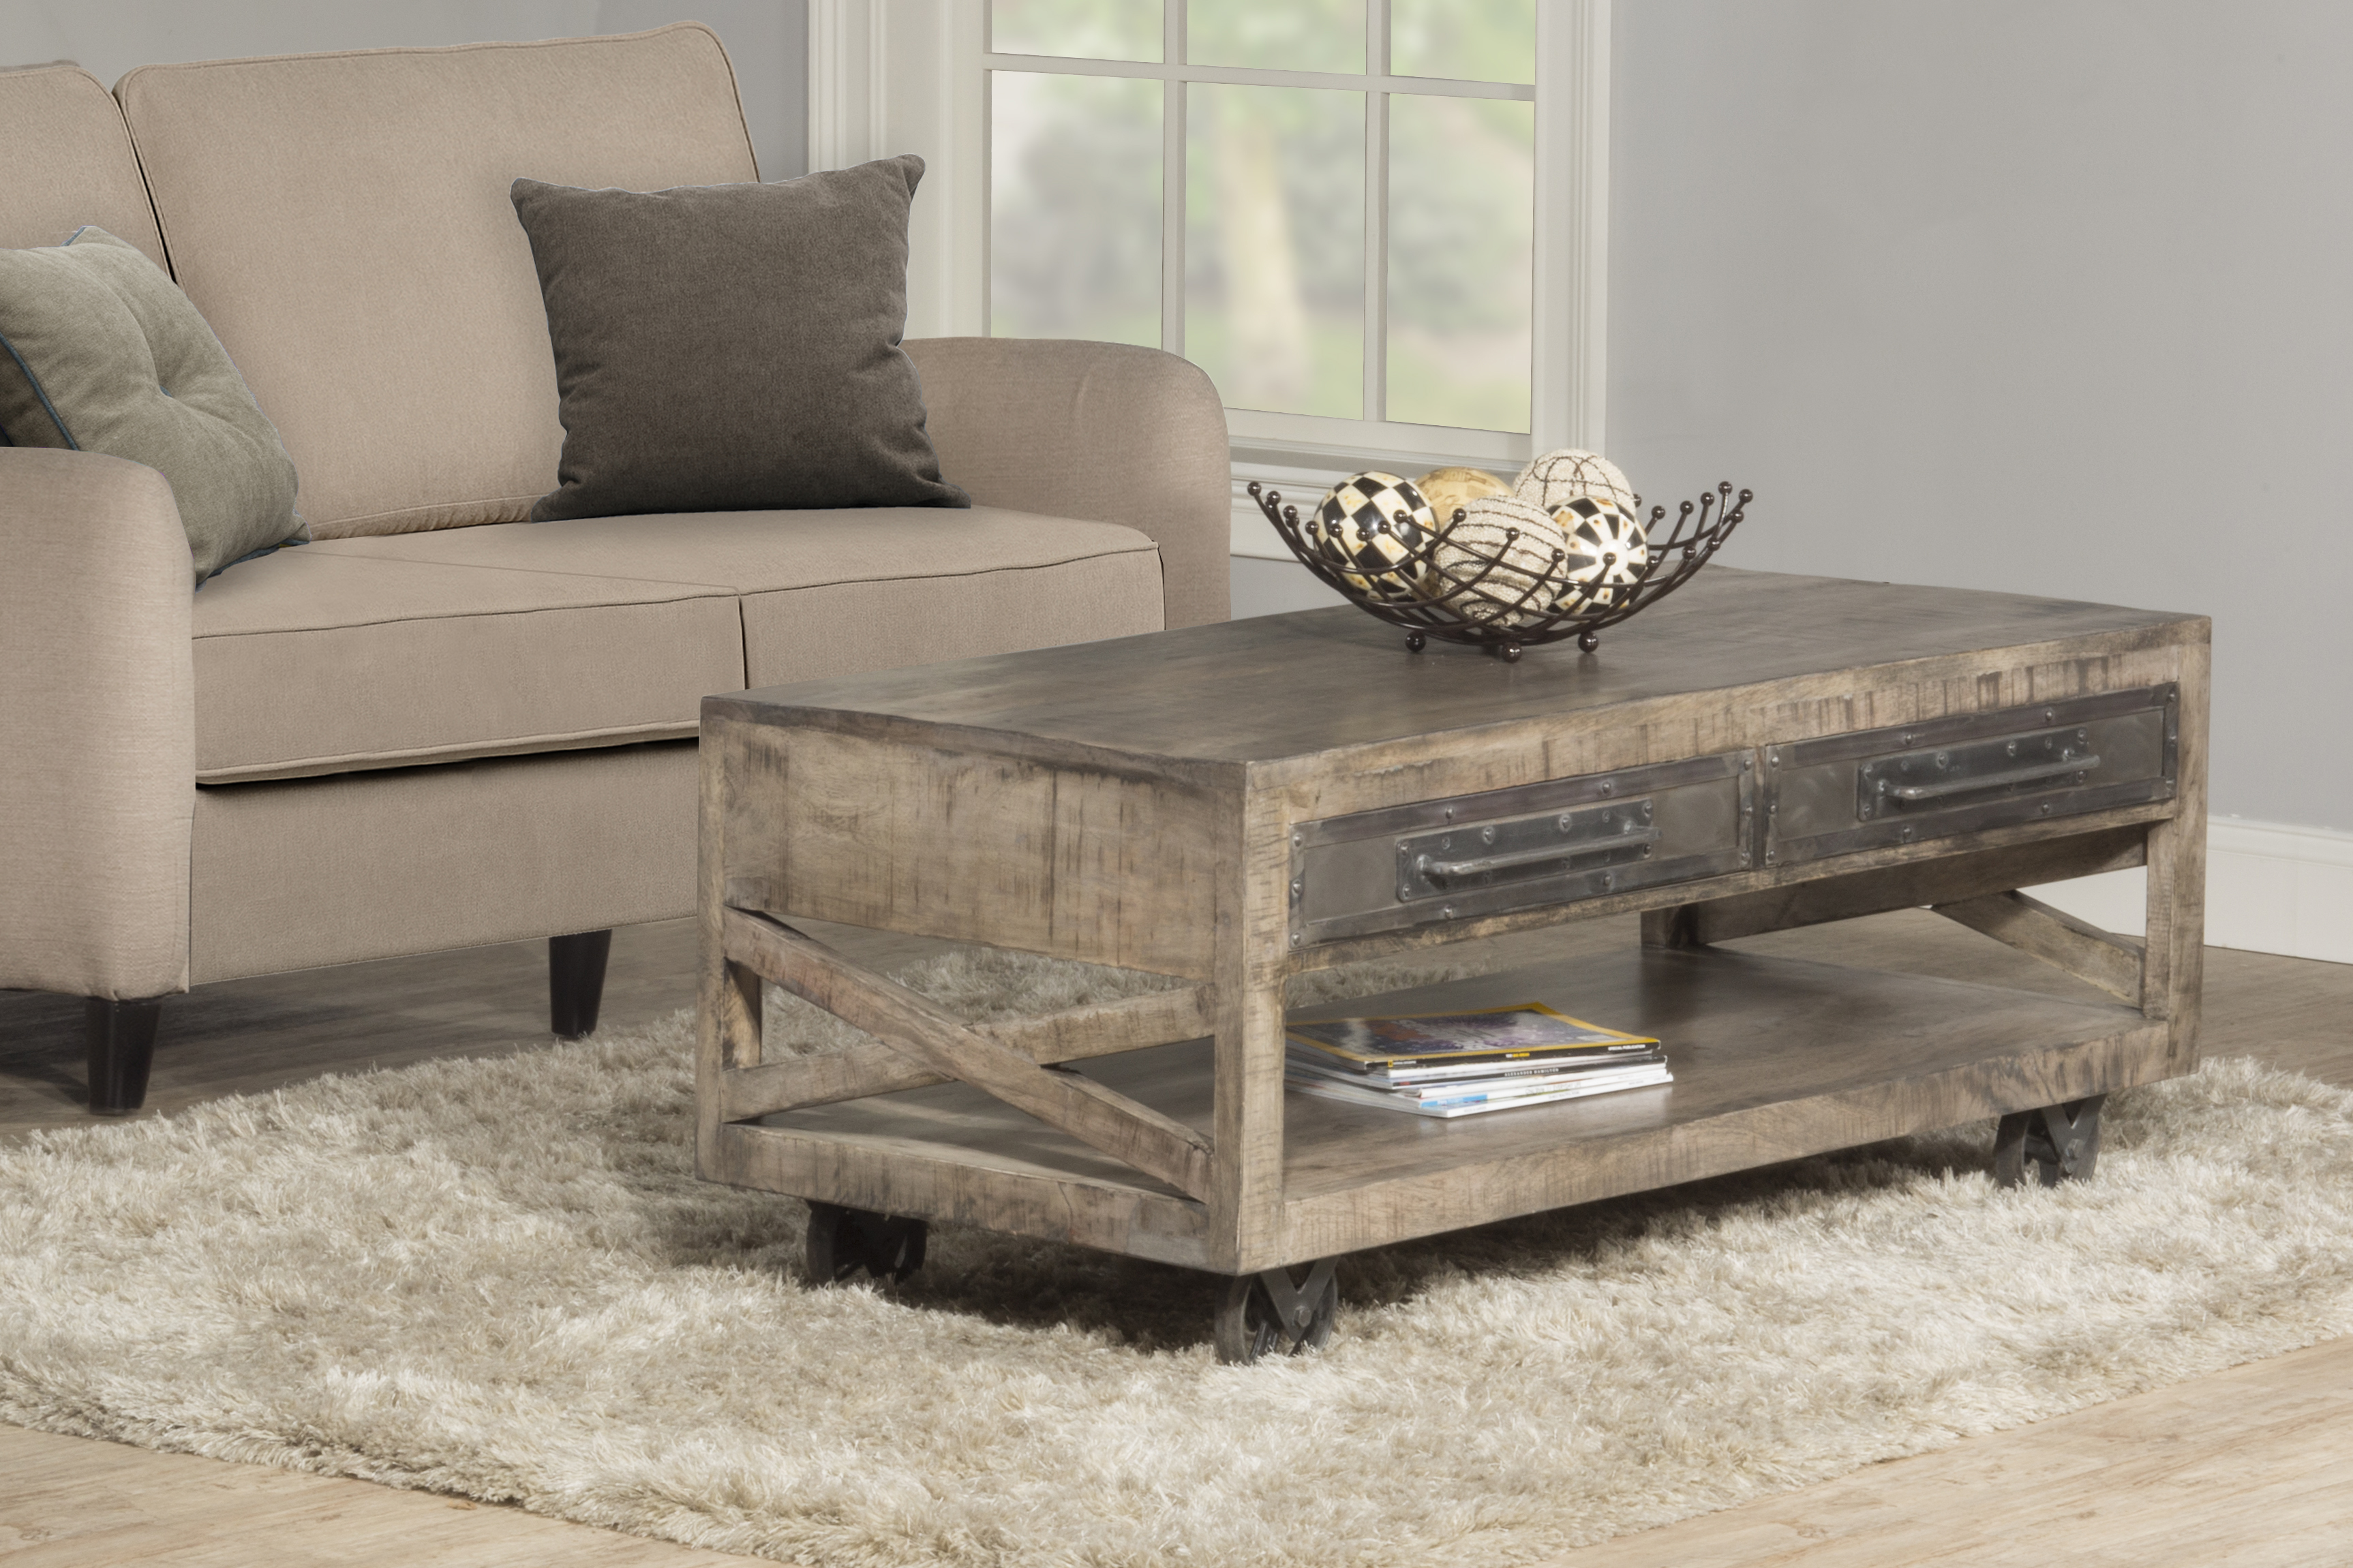 Hillsdale Furniture Bridgewater Coffee Table with Casters - Brushed Tan Wood